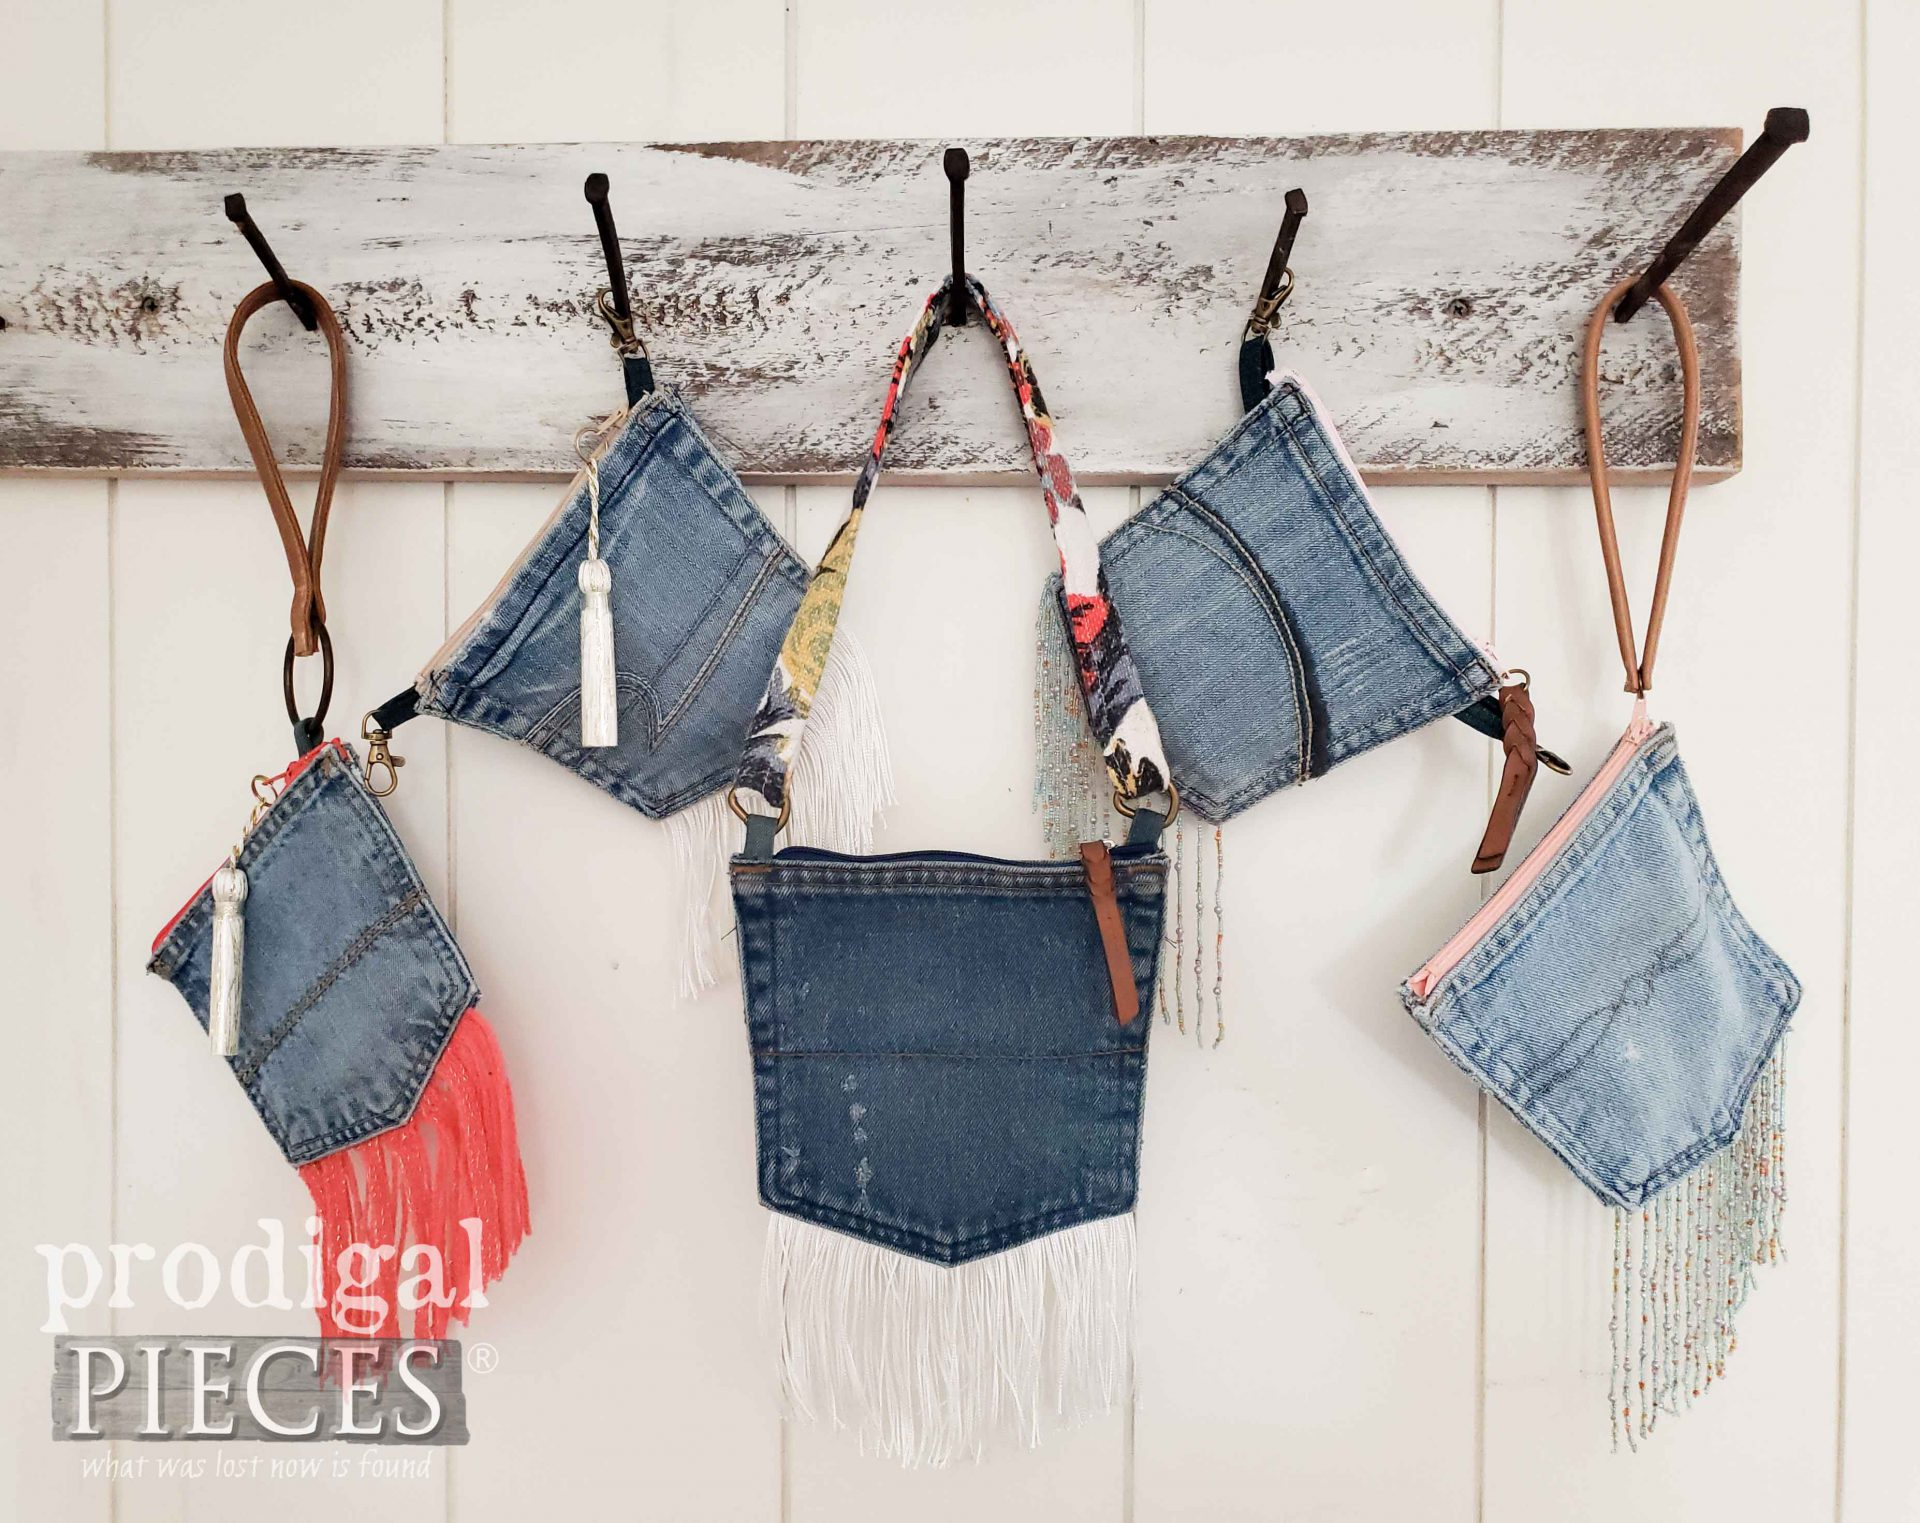 Handmade Pocket Purses from Upcycled Denim Pocket Purses | Video Tutorial by Larissa of Prodigal Pieces | prodigalpieces.com #prodigalpieces #handmade #crafts #diy #tutorial #refashion #upcycle #fashion